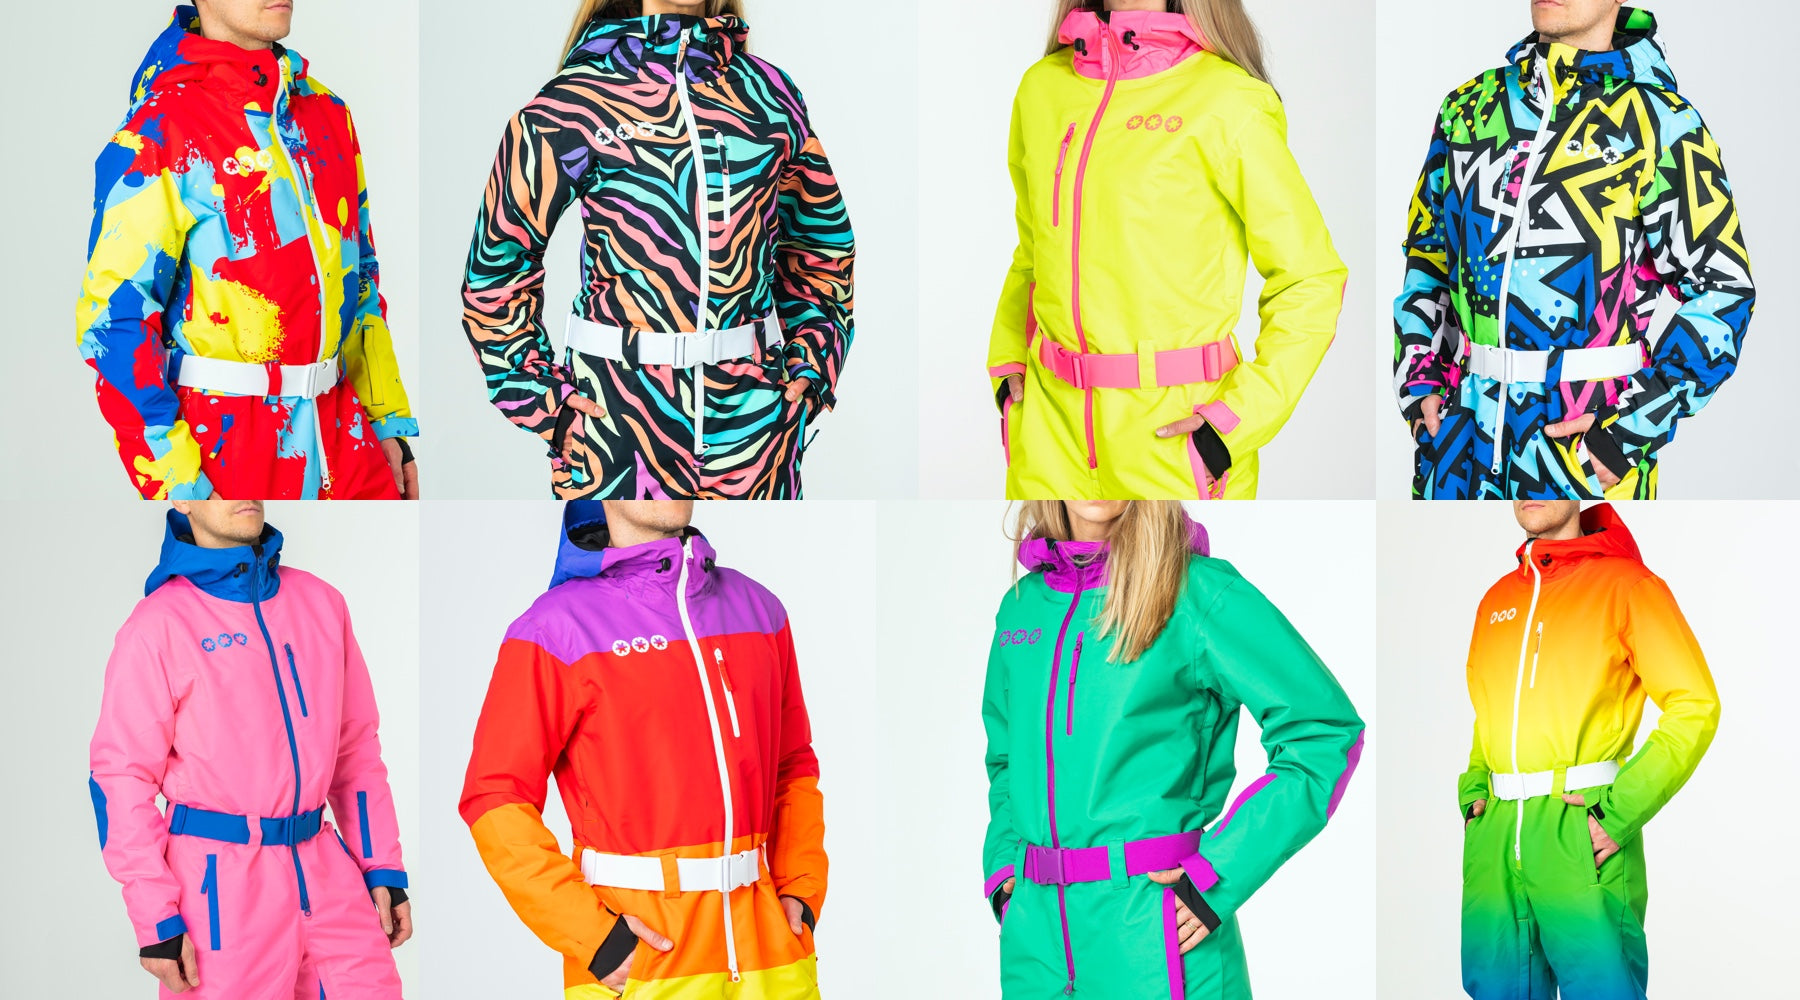 Willyfinder all in one ski suits, eight front on images of all in one ski suit ones. These could otherwise be call snow suits for men and women. Bright colours.